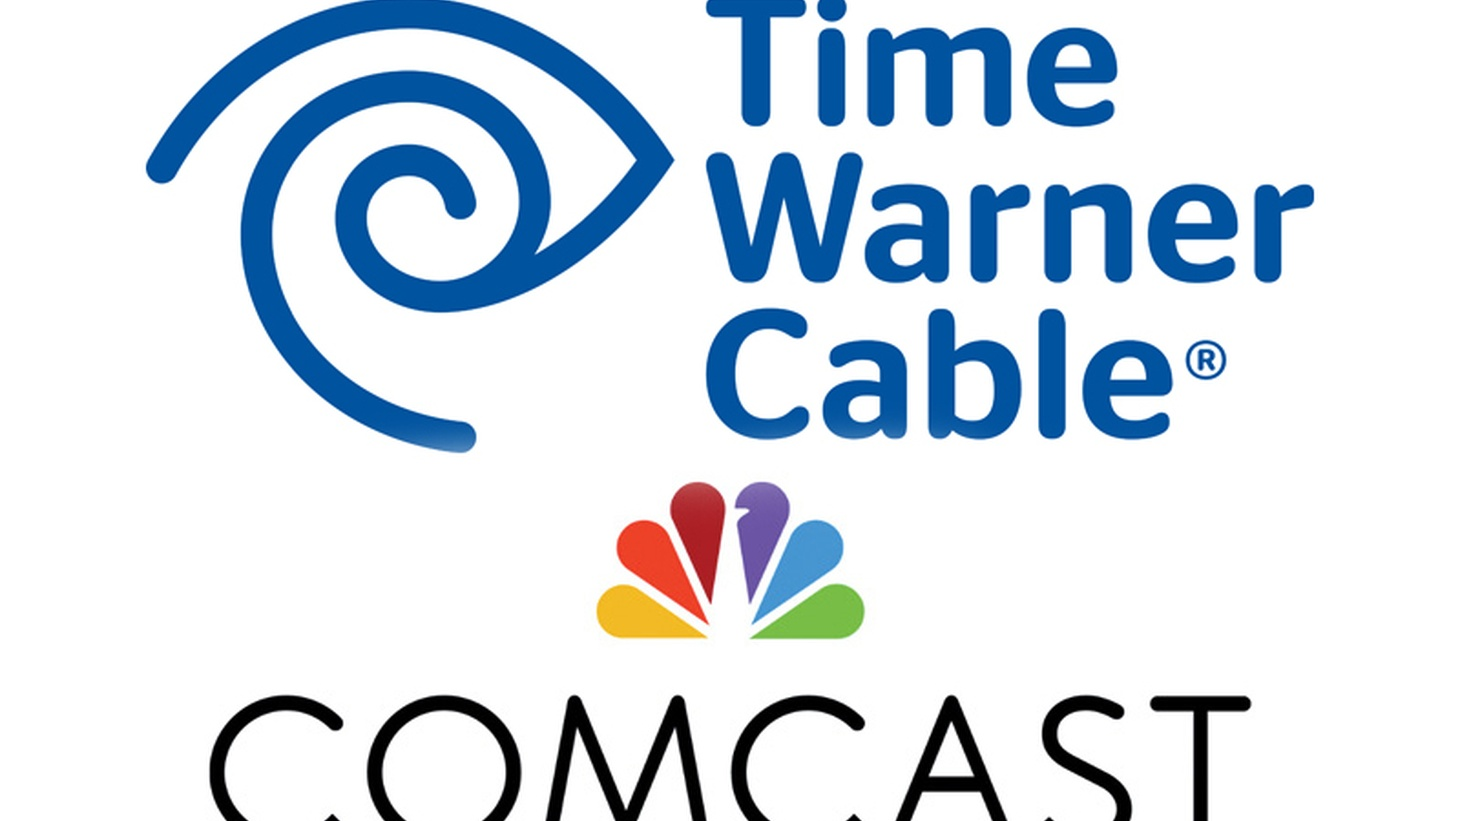 The PUC says it has the authority to block a $45 billion telecom merger in California. Why should Southland customers care which company has the cable TV monopoly? Would it weaken their signals if the PUC killed the merger here but federal regulators approved it for the rest of the country?